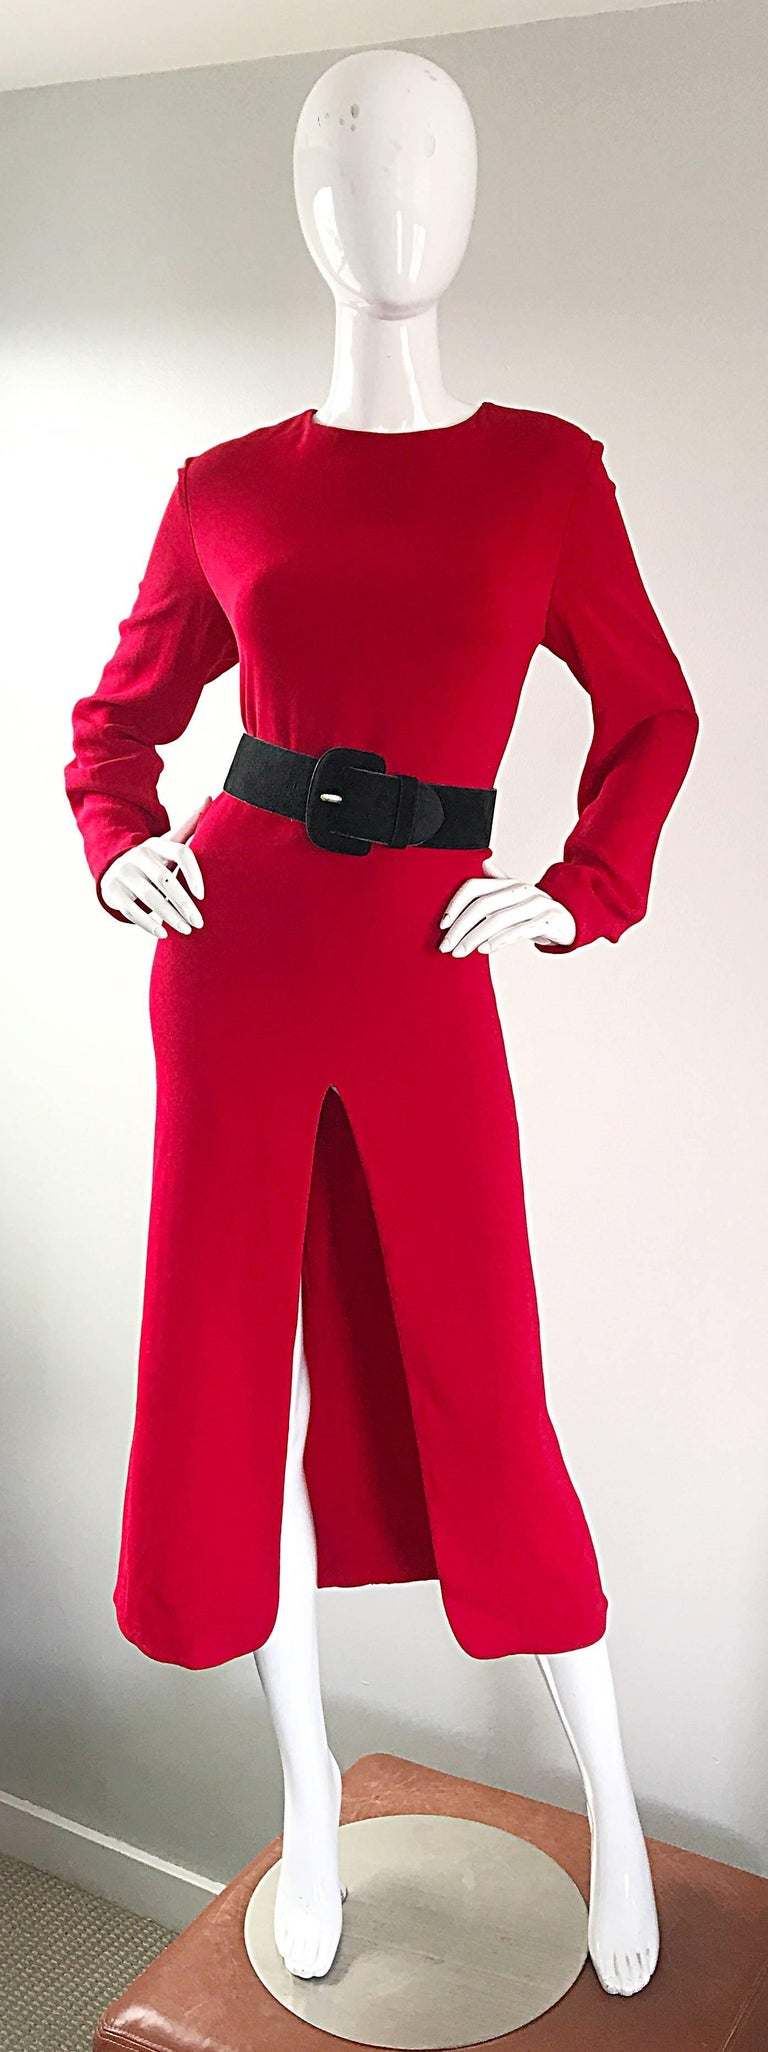 1990s Badgley Mischka Size 10 / 12 Lipstick Red Long Sleeve 90s Evening Dress 5